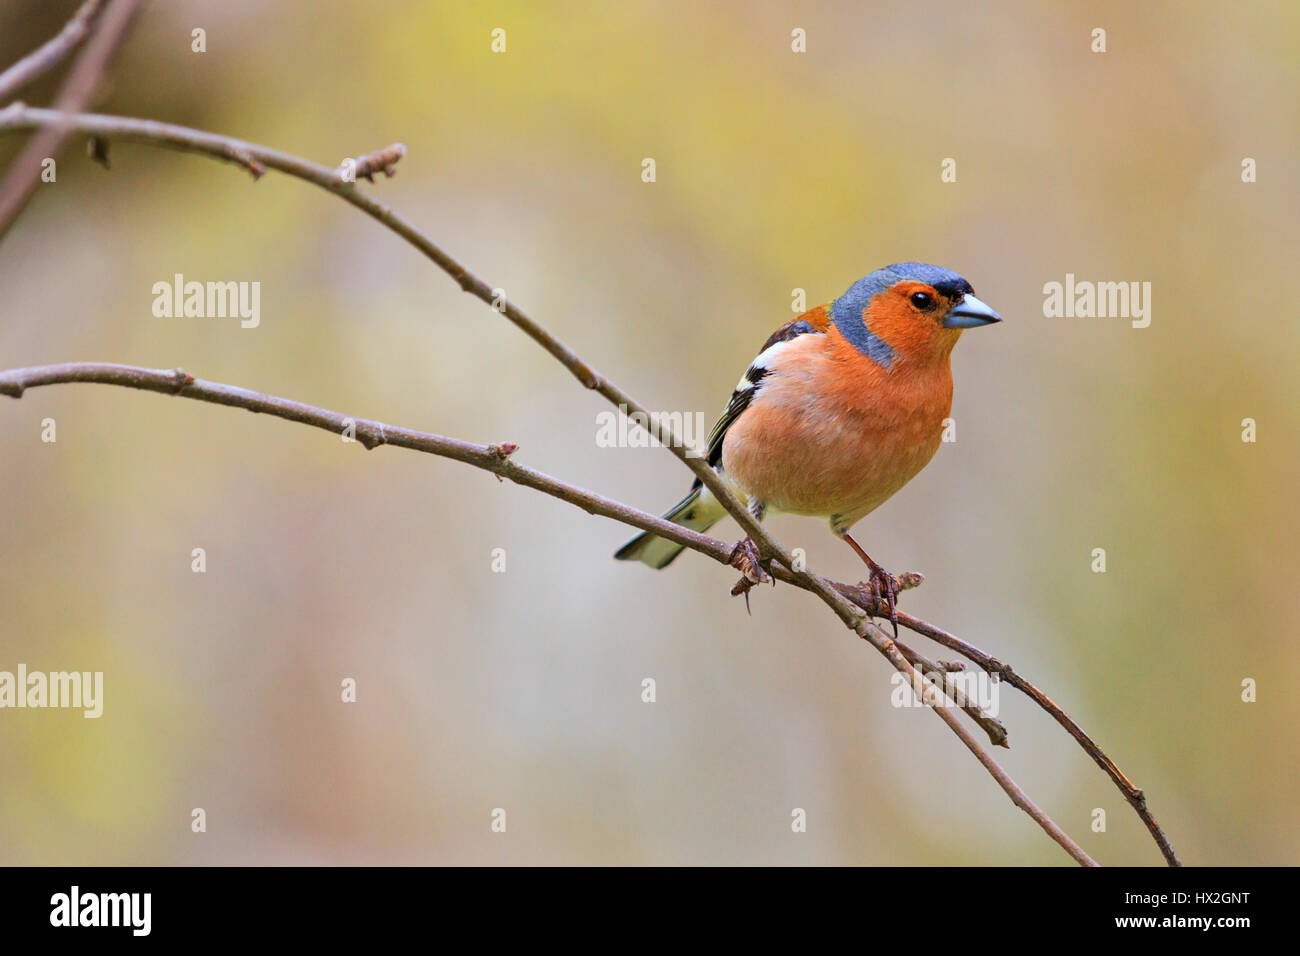 chaffinch in spring day sits on branch in the garden,Spring birds singing, beautiful melody, the birds in the garden, - Stock Image